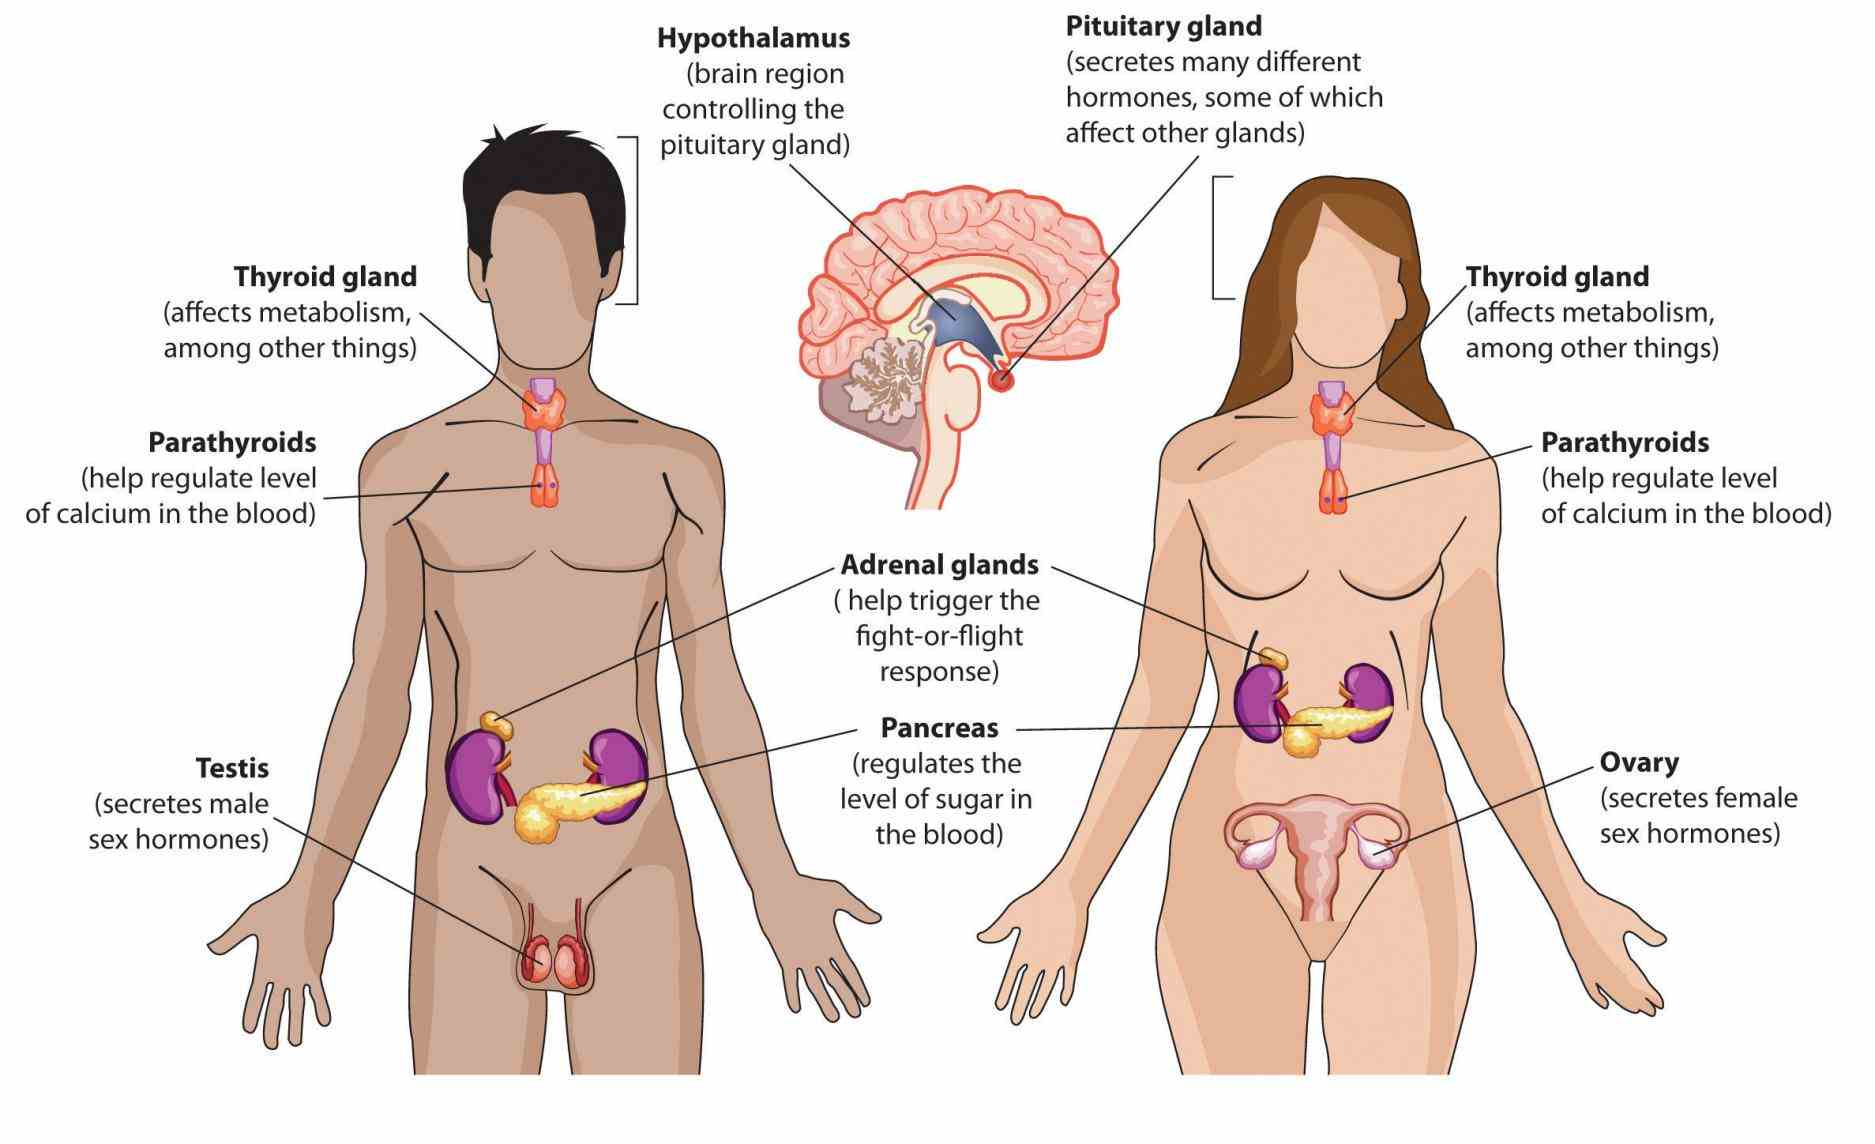 substances that regulate functioning organism such a system  this Anatomy Of Endocrine System article discusses the endocrine system describing